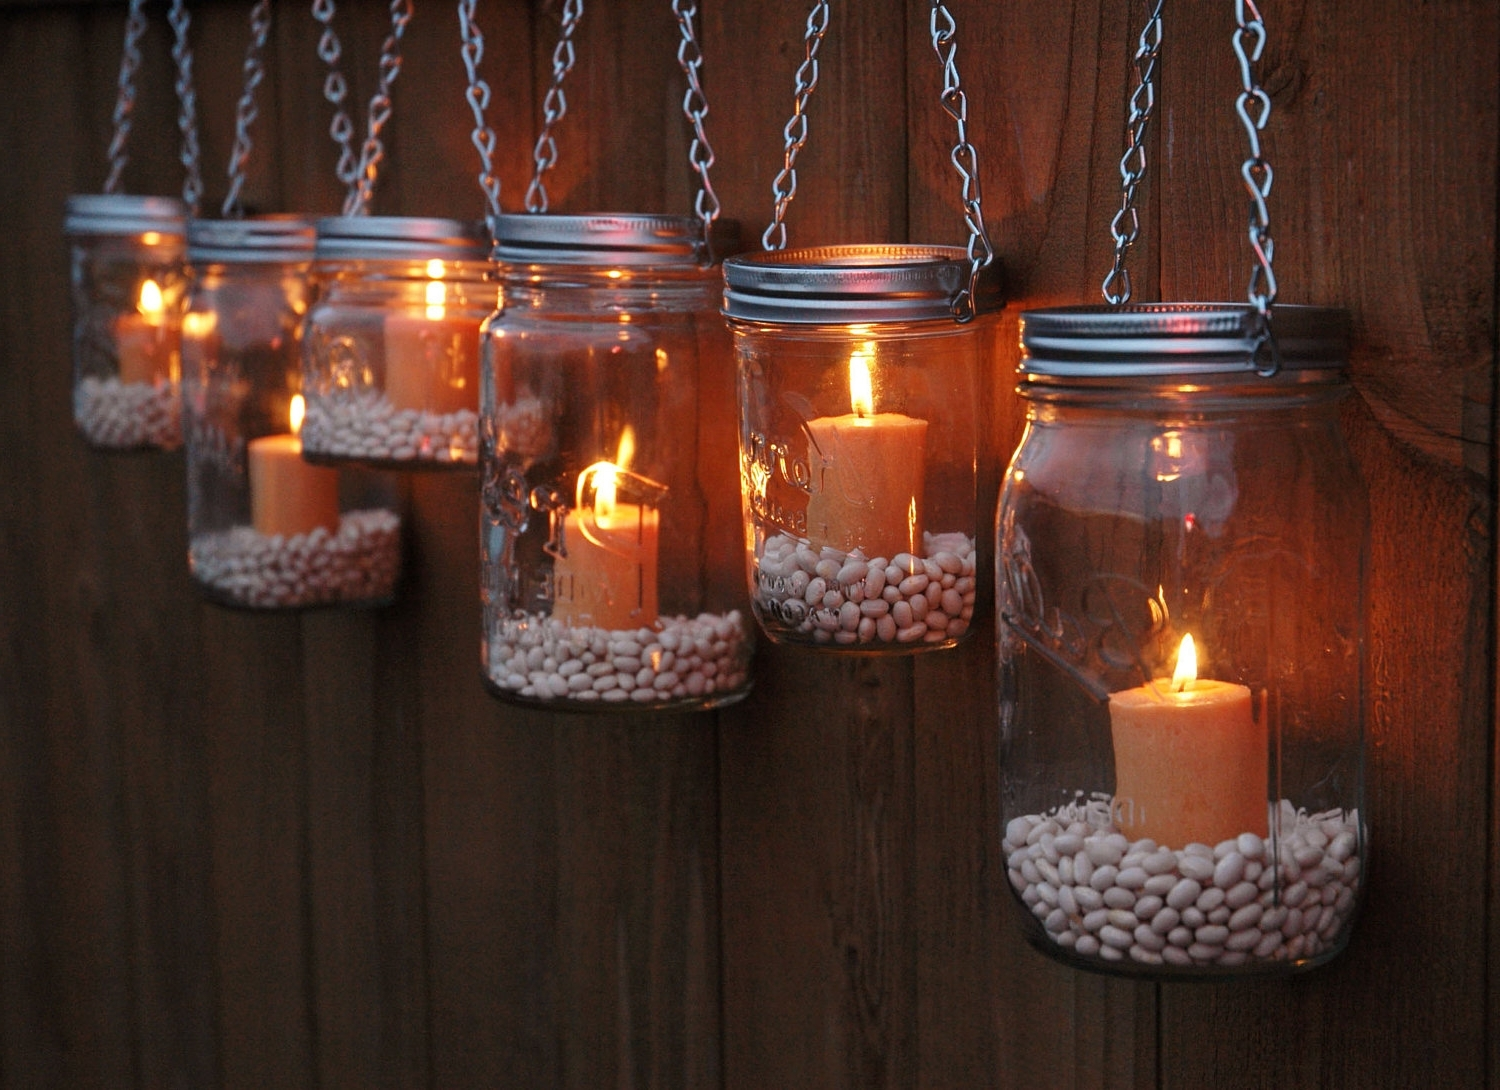 2018 Diy : Set Mini Mason Jar Mugs With Tea Lights Outdoor Lighting Solar Pertaining To Outdoor Hanging Tea Lights (View 7 of 20)